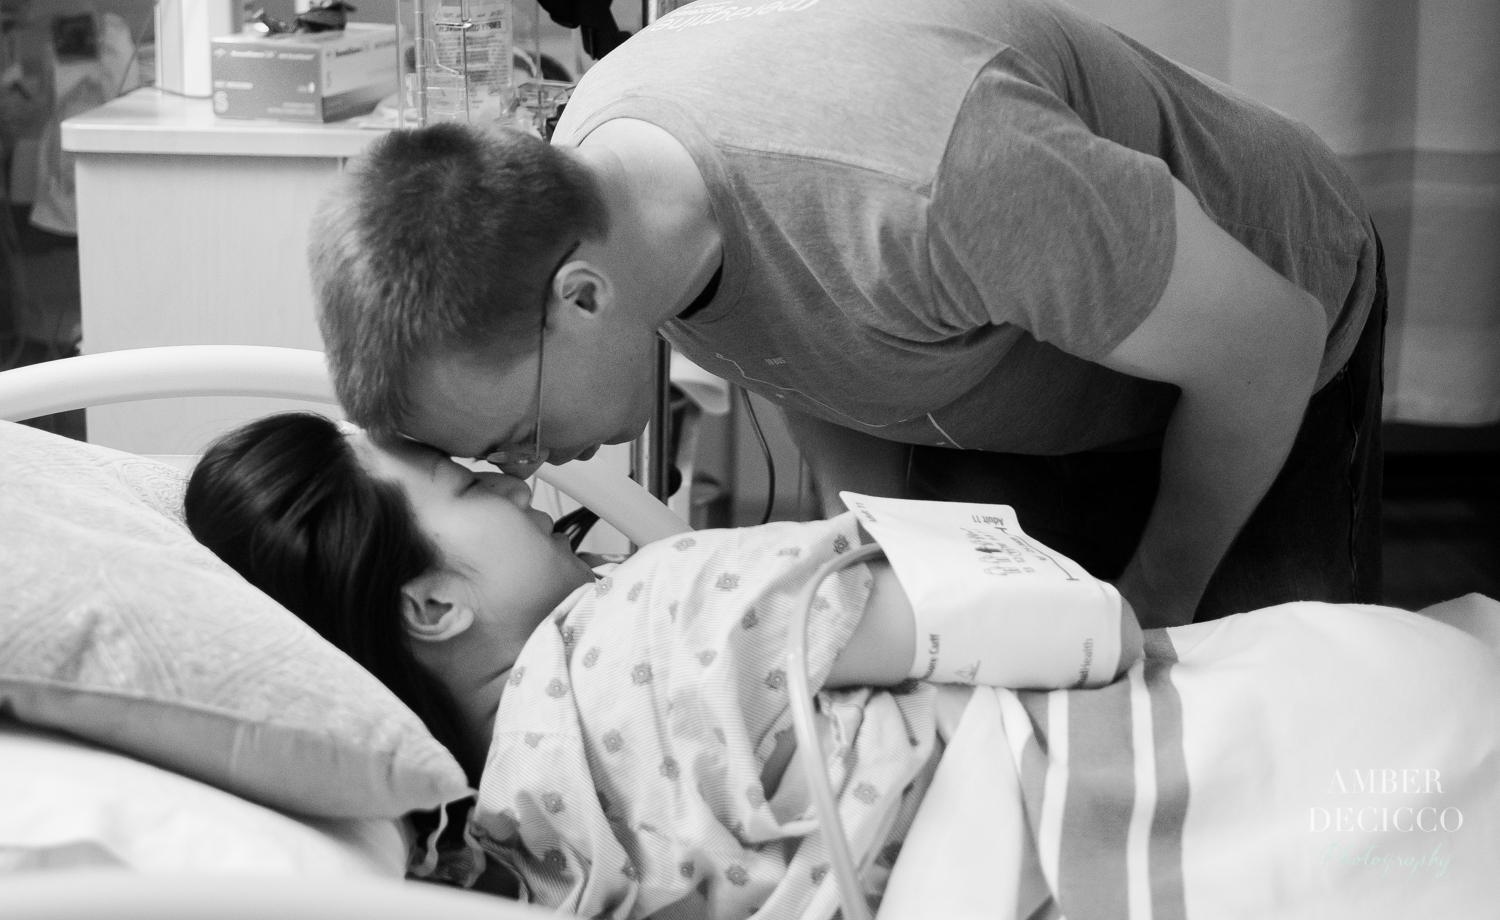 Dad comforts his wife during labor | Birth Photography ©Amber DeCicco Photography